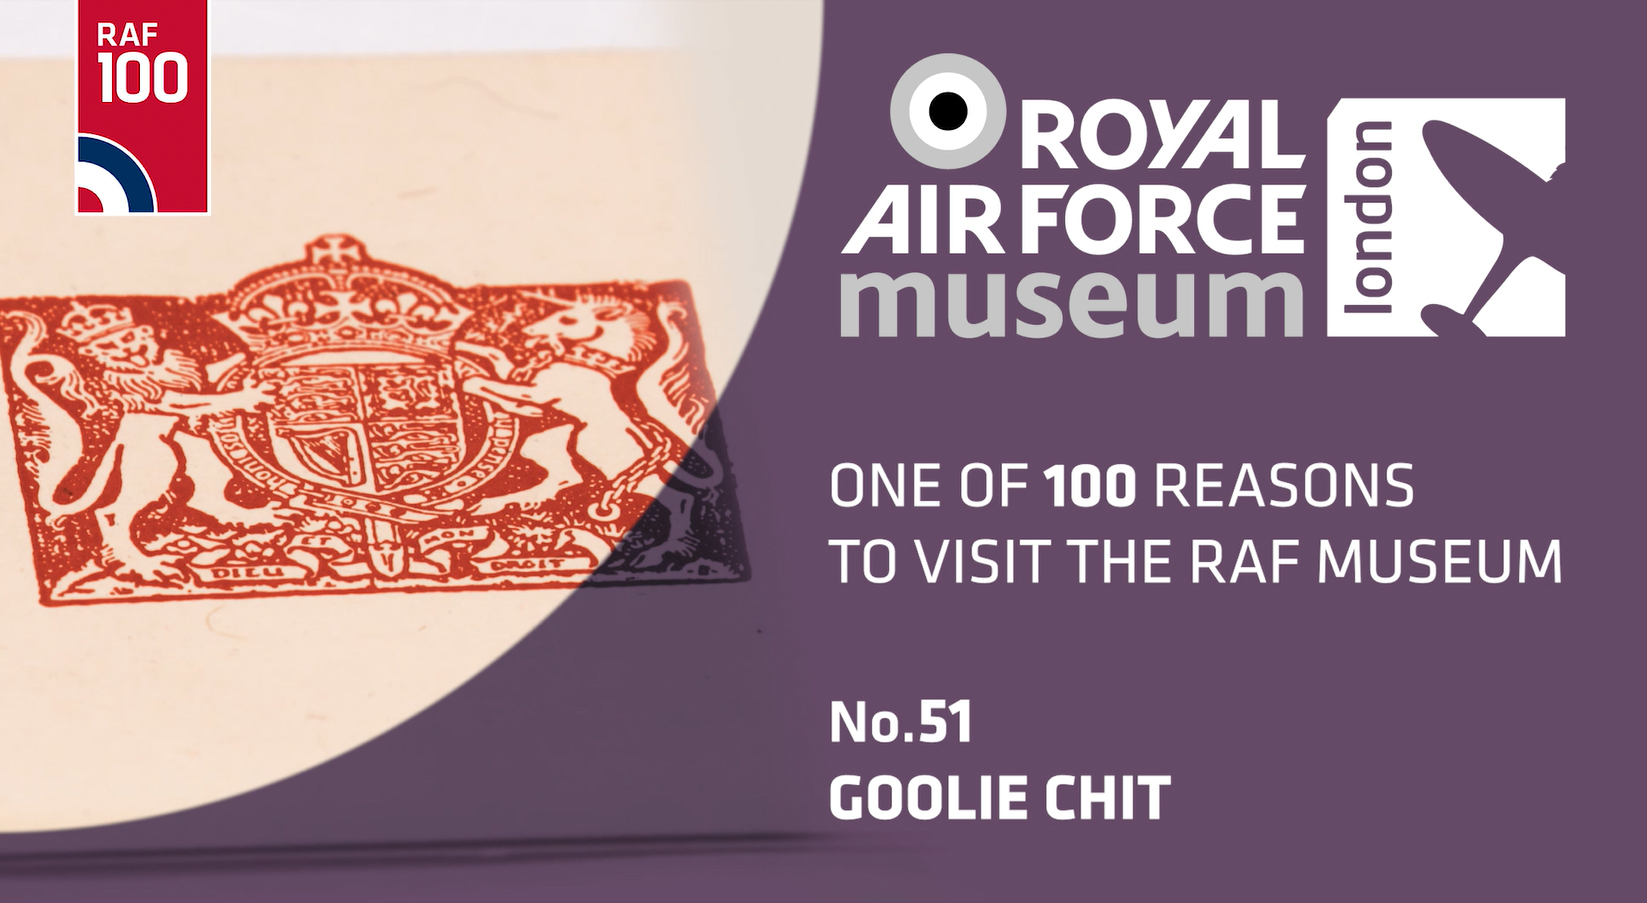 Goolie Chit - one of 100 reasons to visit the RAF Museum